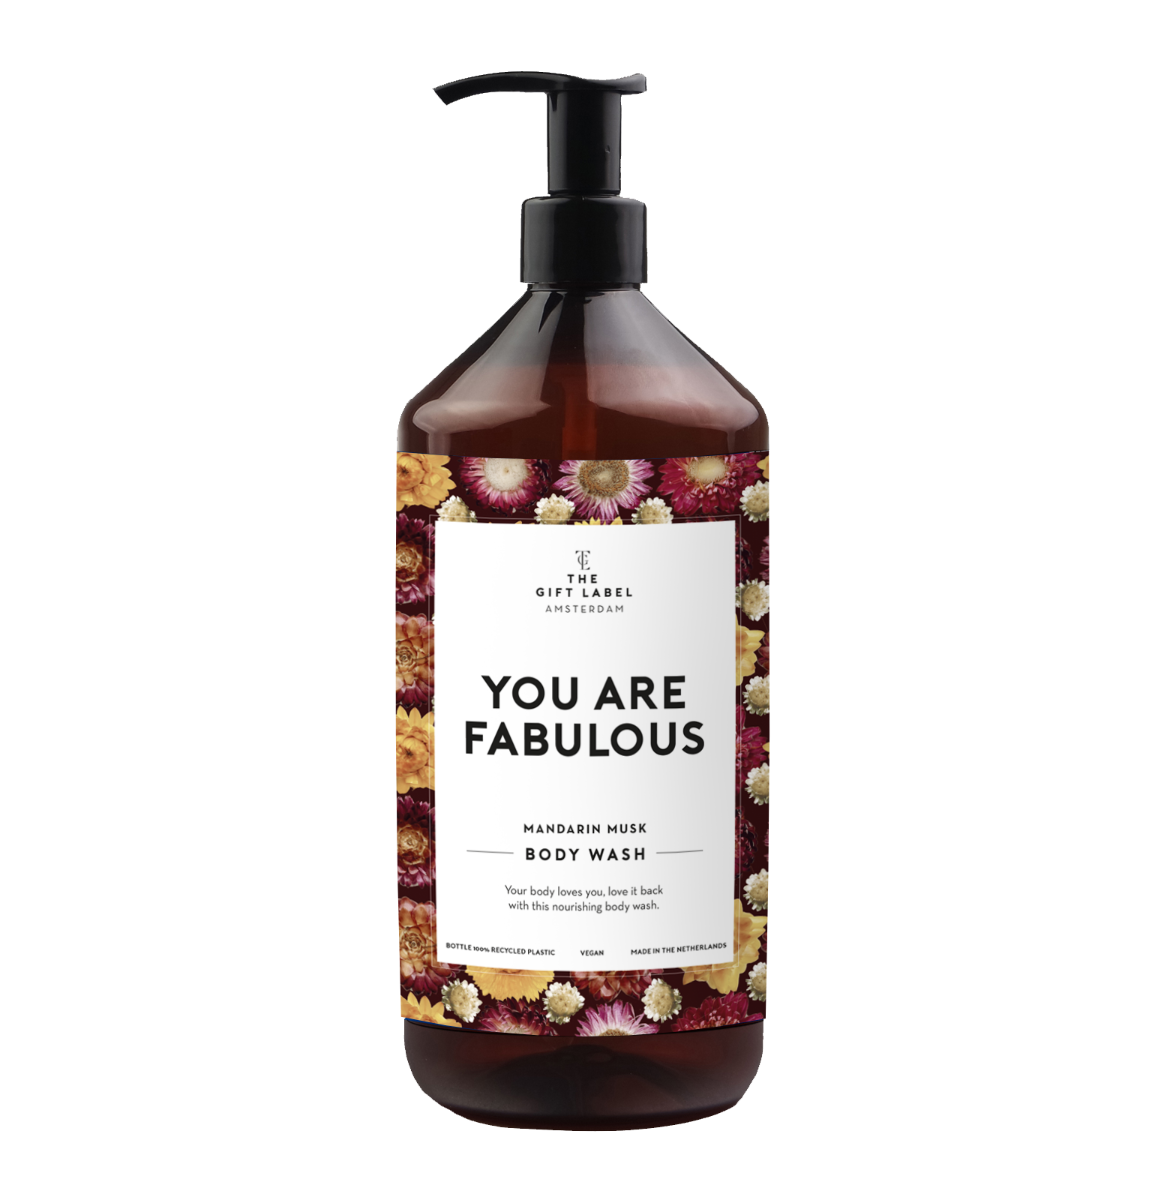 The Gift Label Body wash 1 liter - You are fabulous